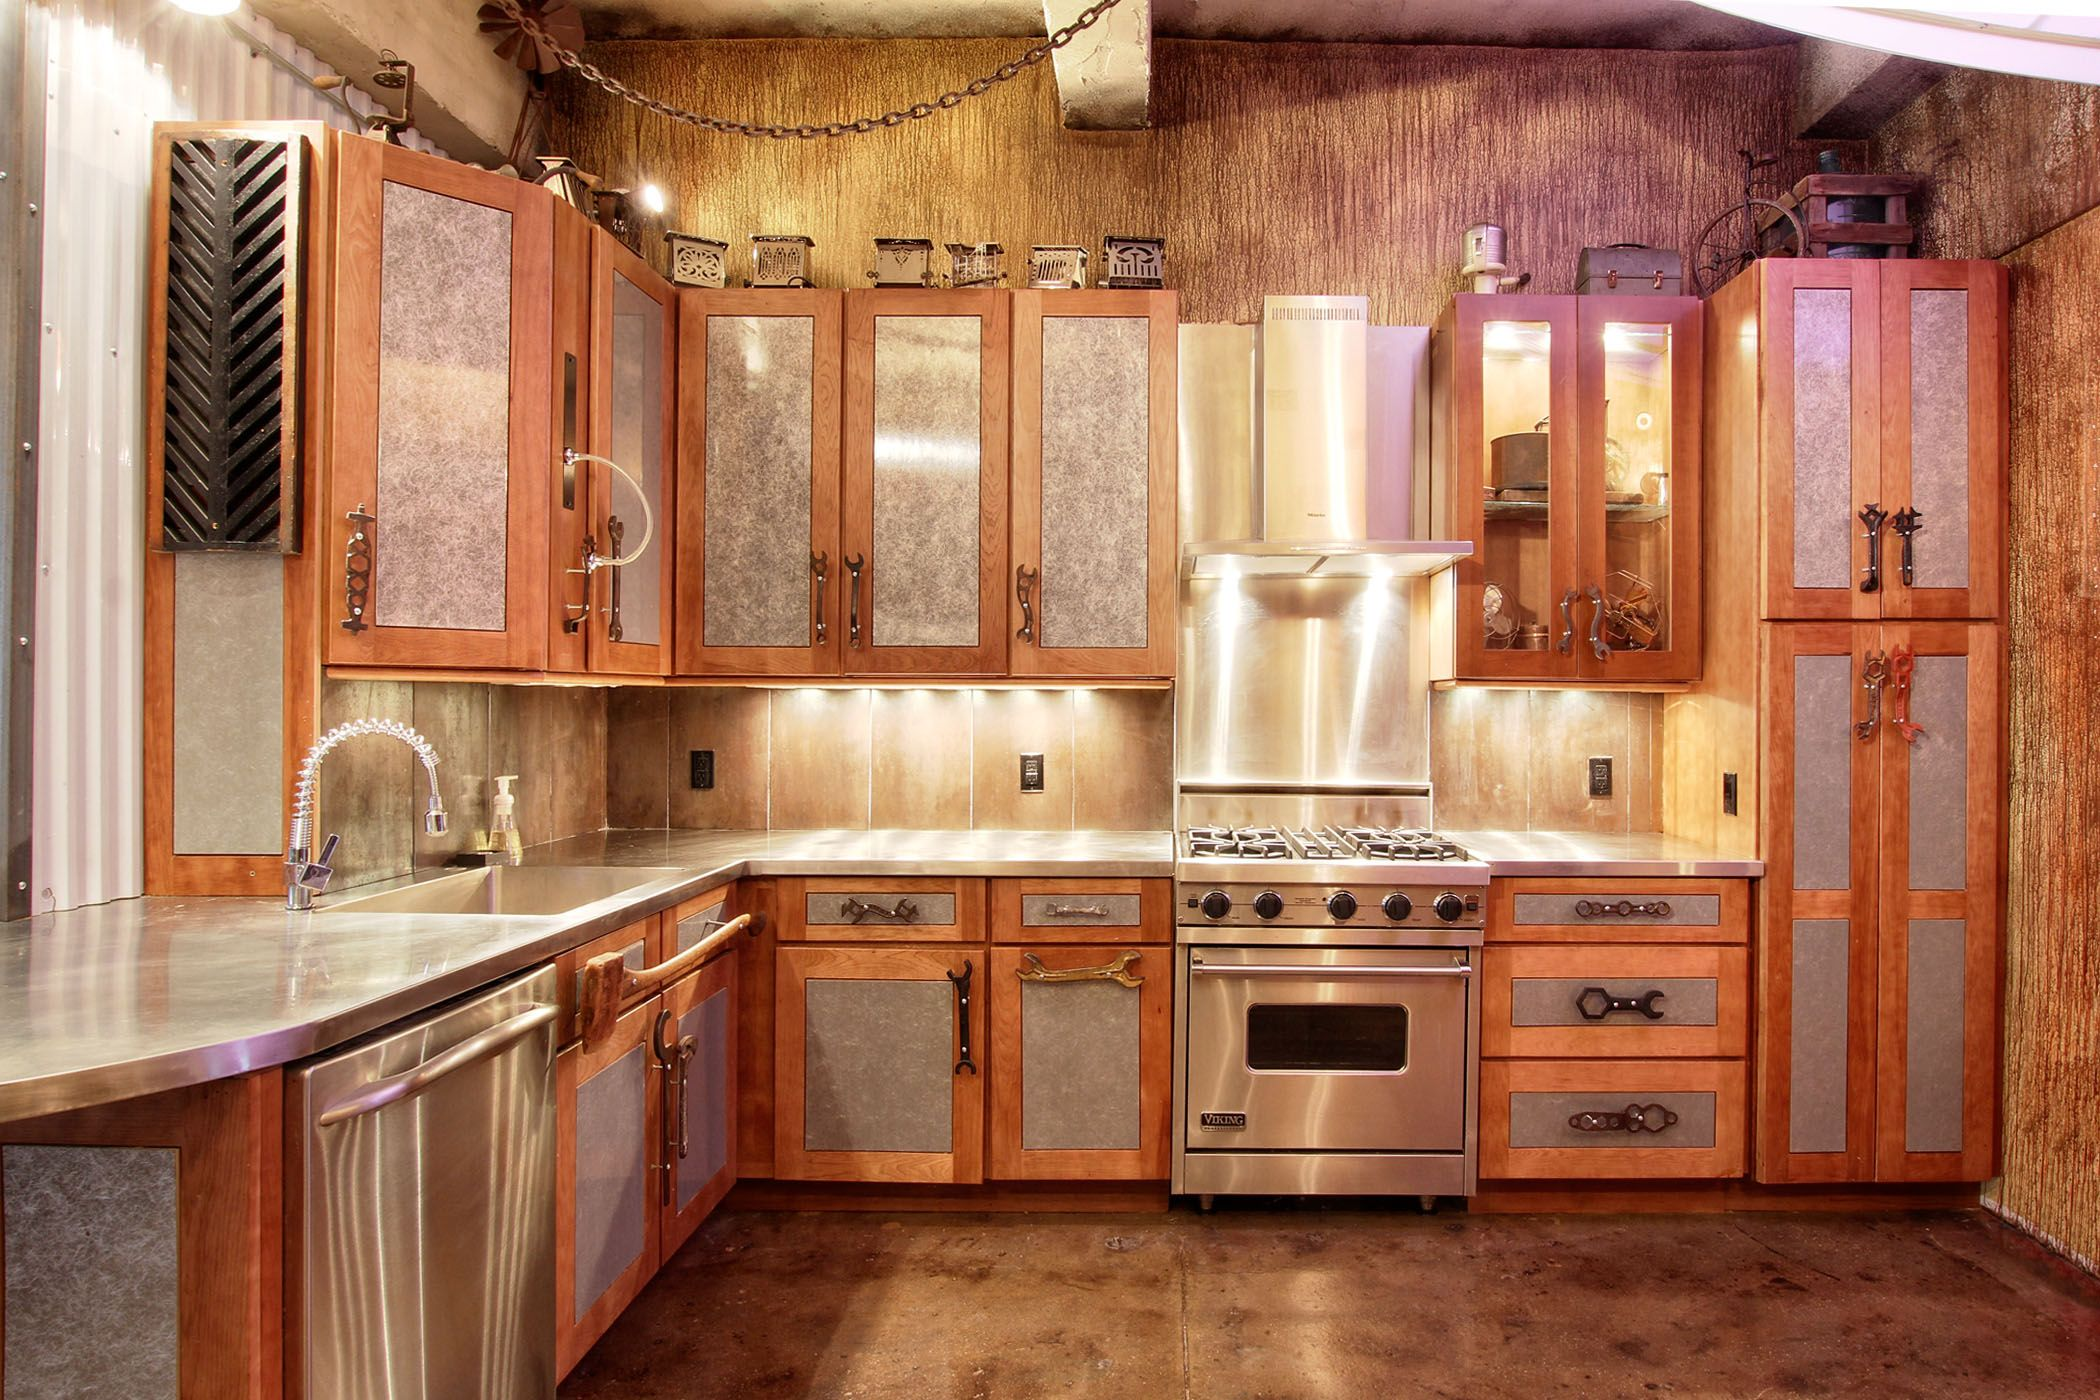 1 650 000 00 Chef S Kitchen With Stainless Steel Countertops Viking Range Get The Details About The Manh Steampunk Kitchen Eclectic Kitchen Eclectic Loft